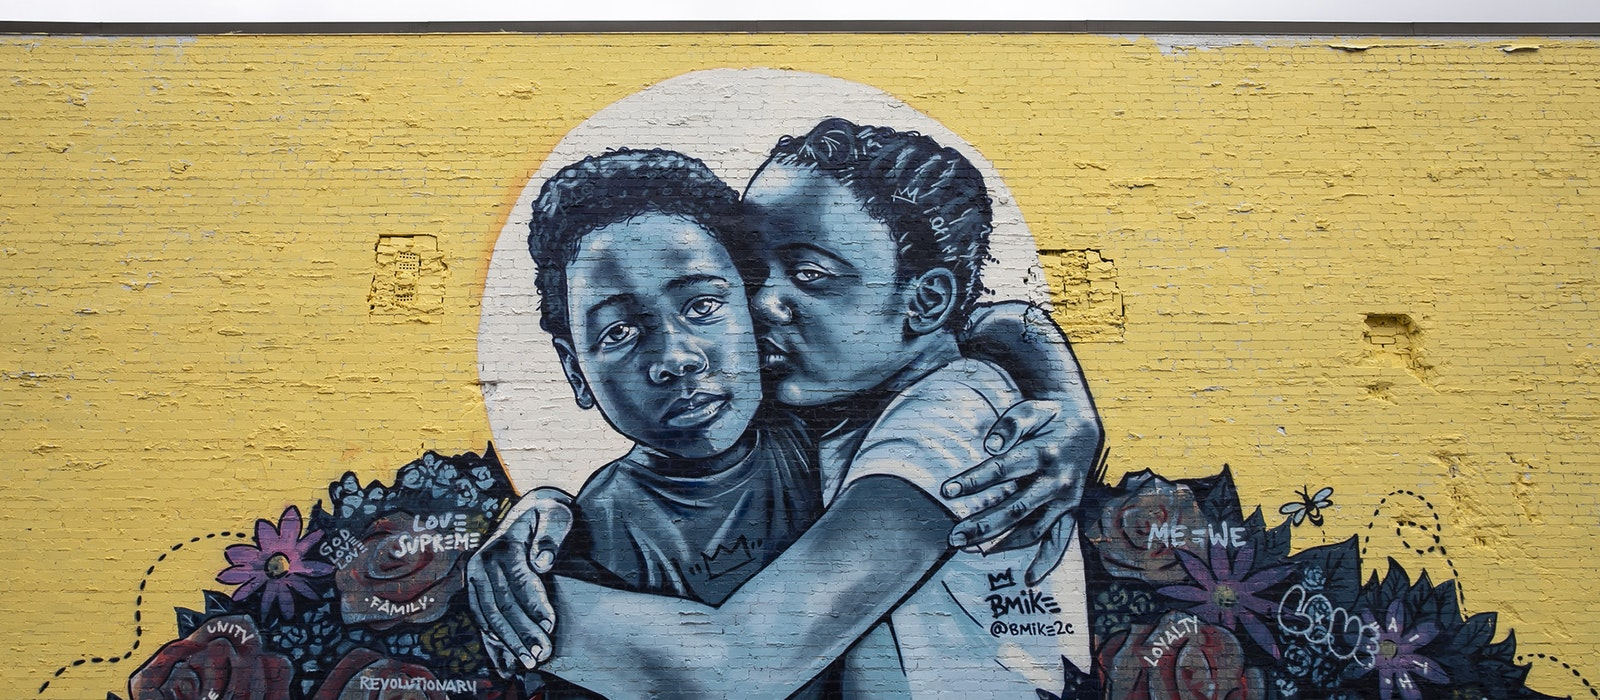 "As part of Off the Wall's mural project in Atlanta, New Orleans–based artist B Mike contributed two works, including ""Love & Protection"" responding to issues facing the next generation."